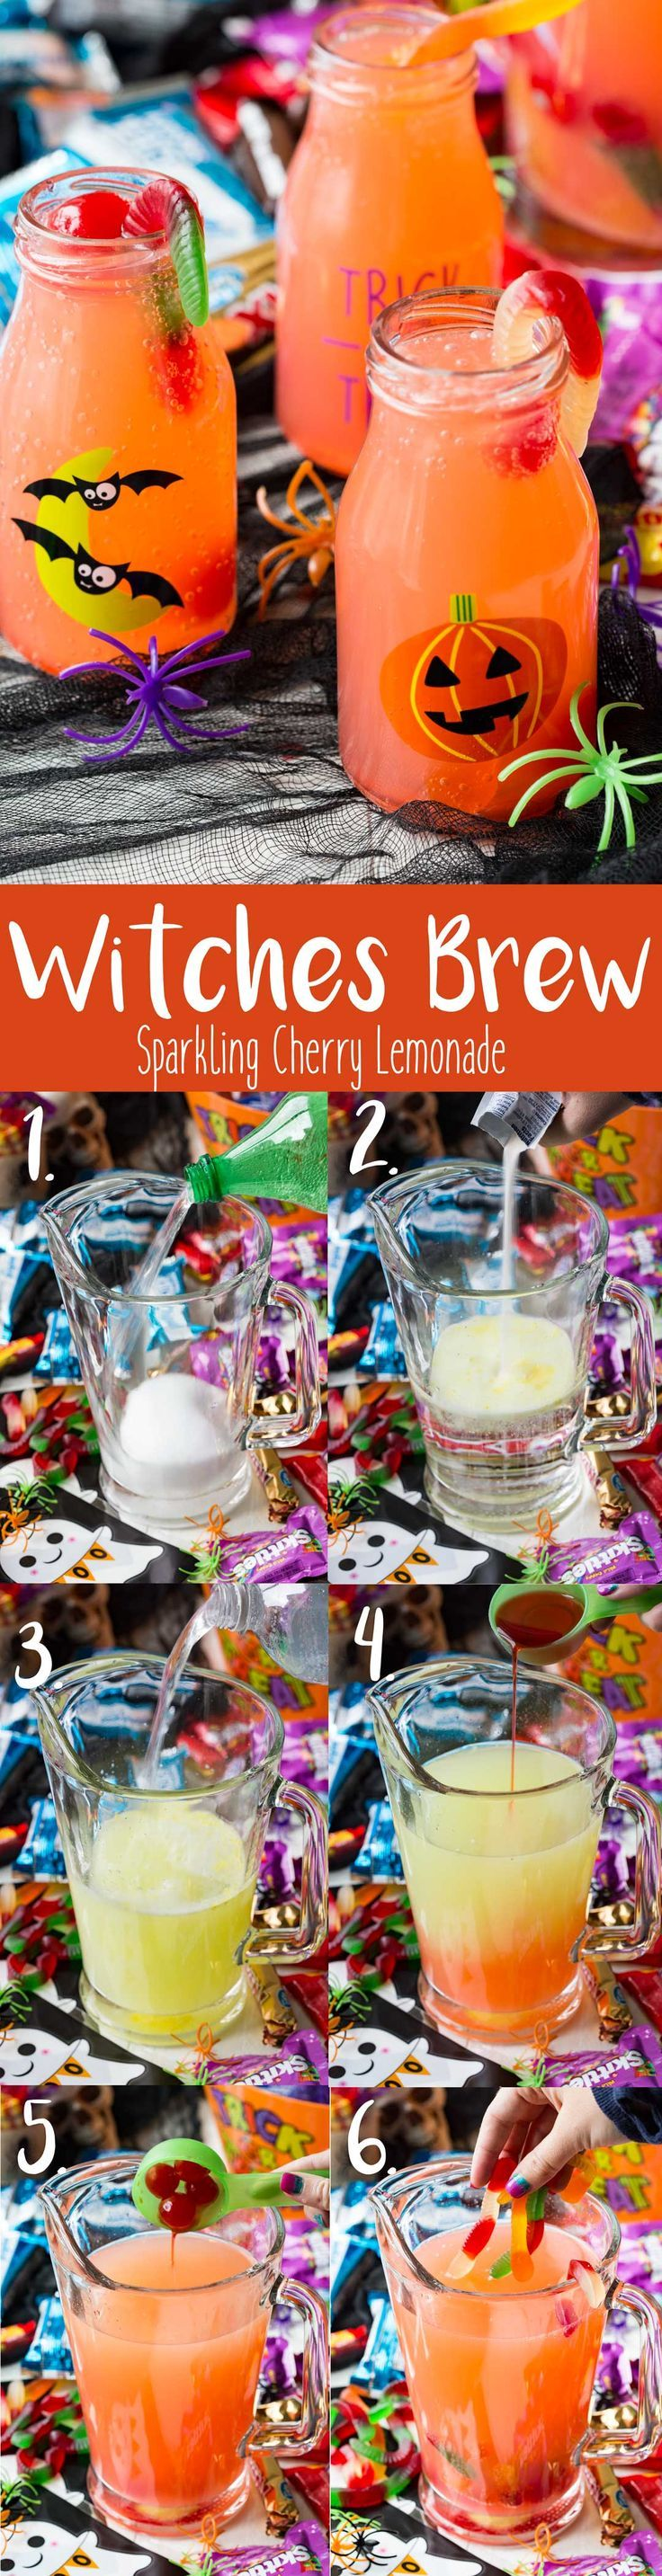 "This sparkling cherry lemonade is the perfect Halloween Witches Brew and so fun for a Ghostbusters® movie night. It is fun and tasty, and the kids will get a kick out of adding ""blood shot eyeballs"" and ""worms"" to their punch! Witches Brew ingredients make for a great BOO bundle! #BOOitForward #ad @walmart  -Eazy Peazy Mealz"